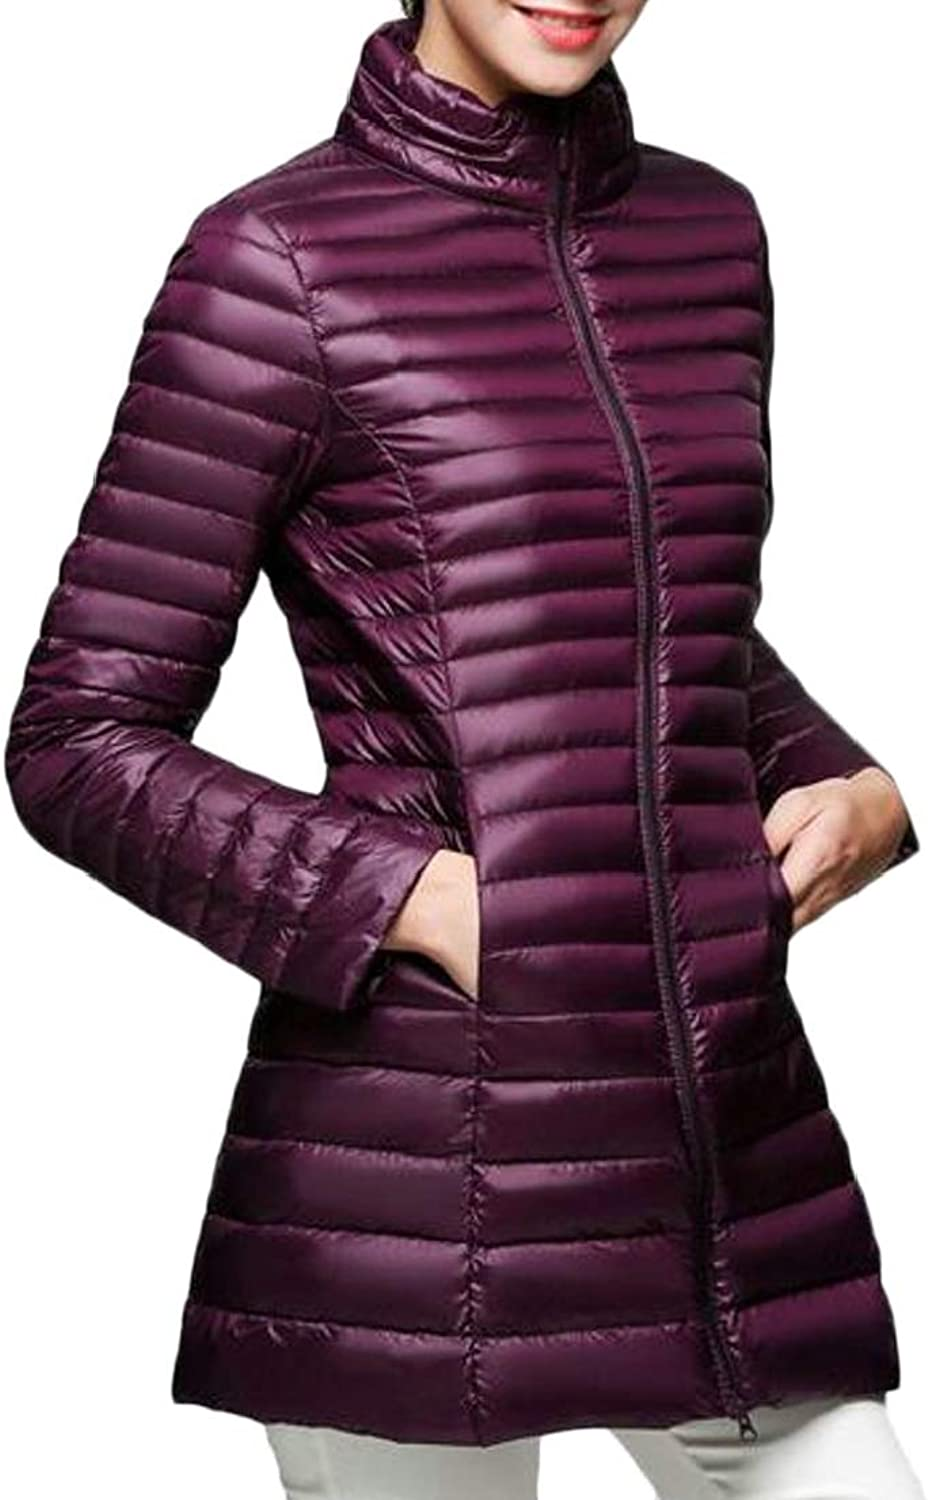 Generic Womens Light Weight Solid Long Puffer Down Parka Jacket